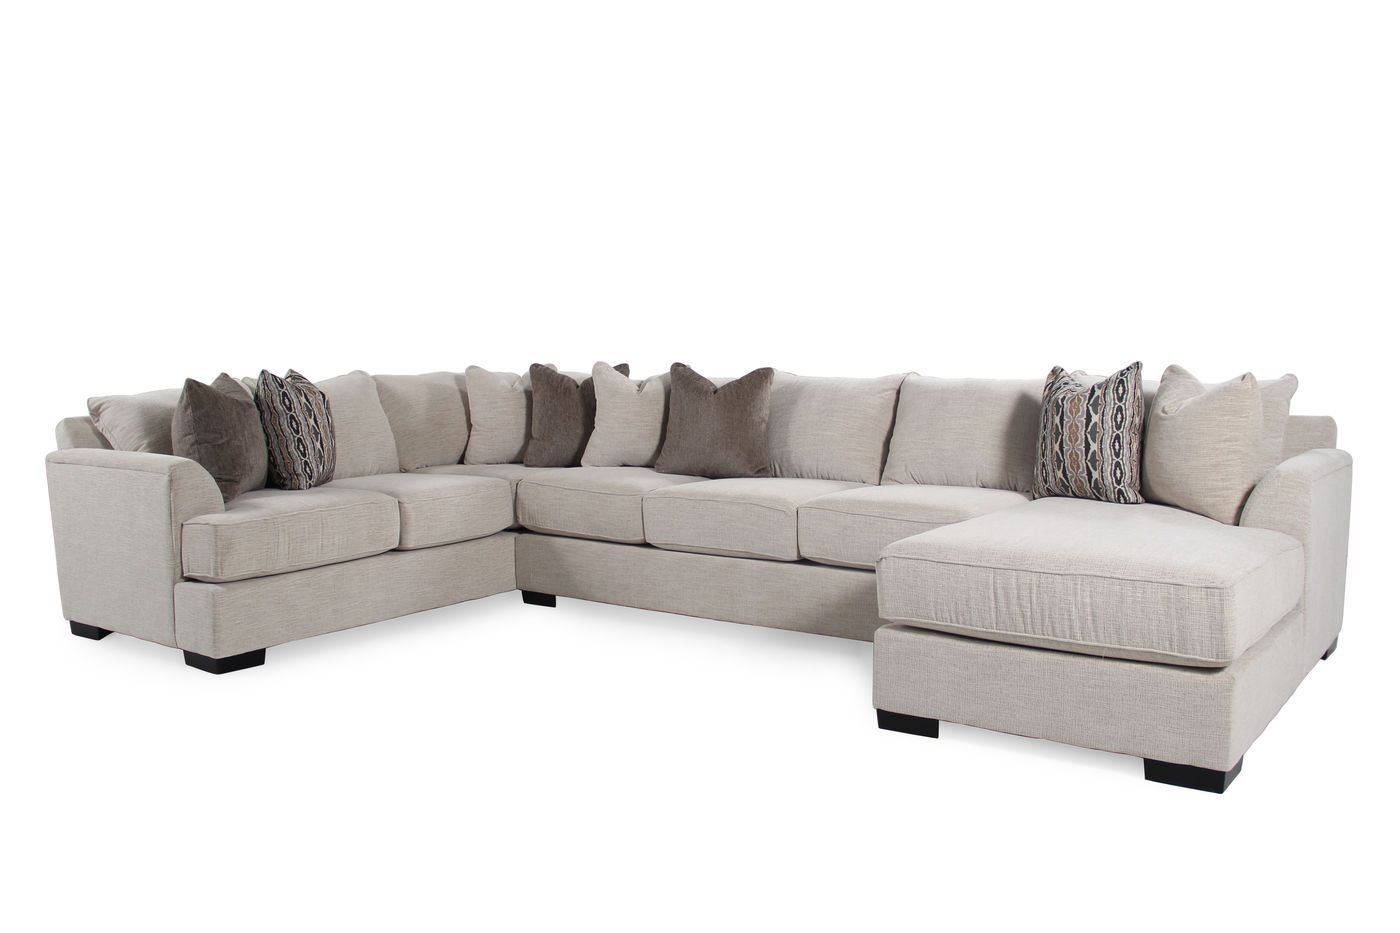 michael nicholas commander sectional mathis brothers furniture for the home pinterest brothers furniture sectional sofa and